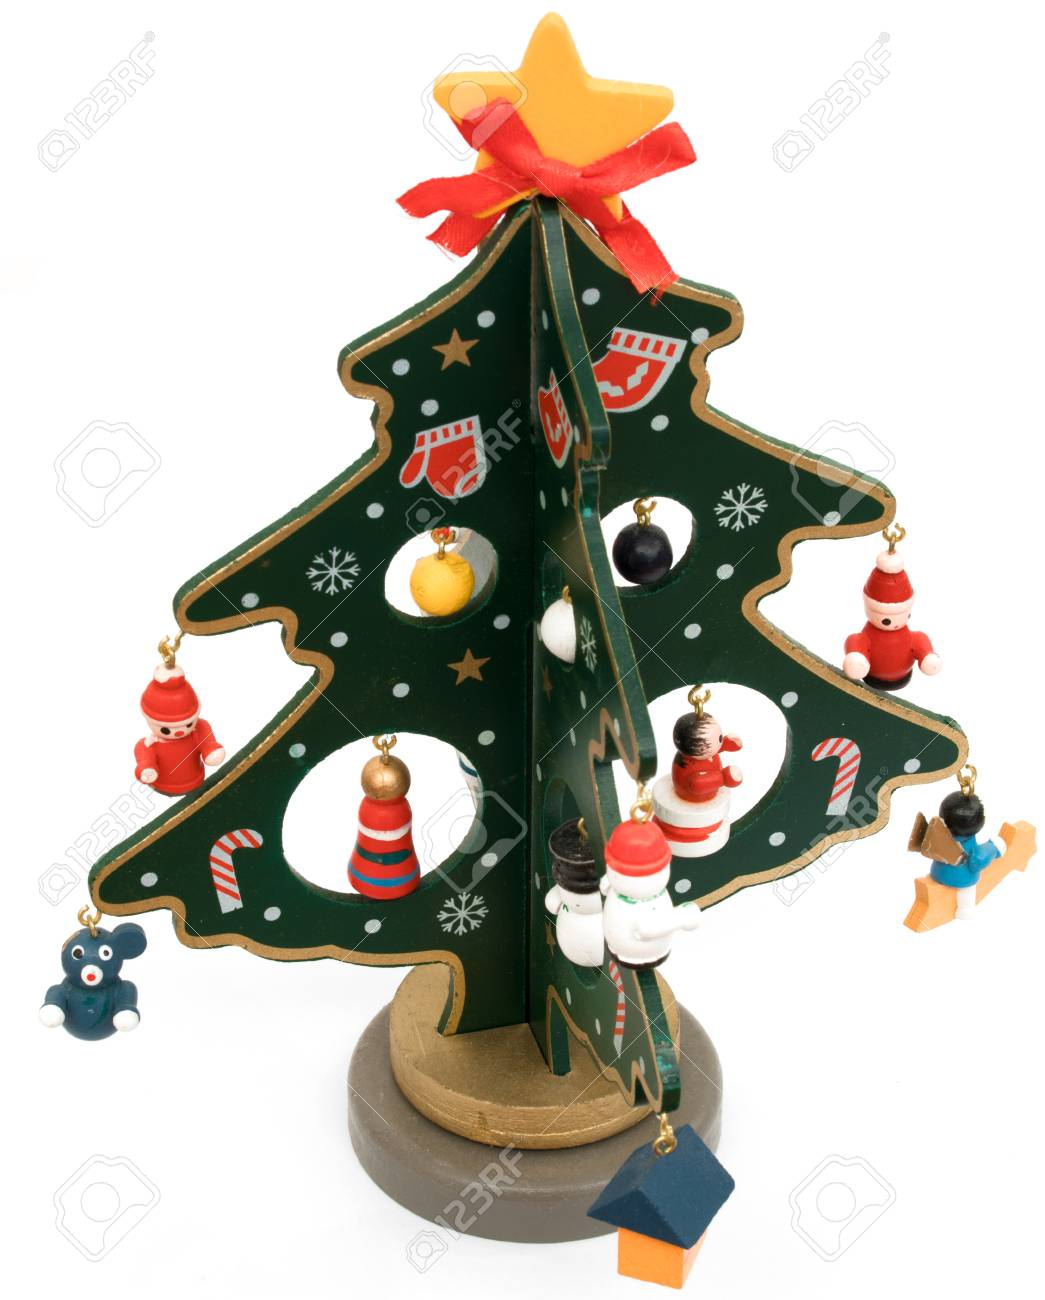 Colorful Painted Wooden Christmas Tree Isolated On White Background Stock Photo Picture And Royalty Free Image Image 91115662